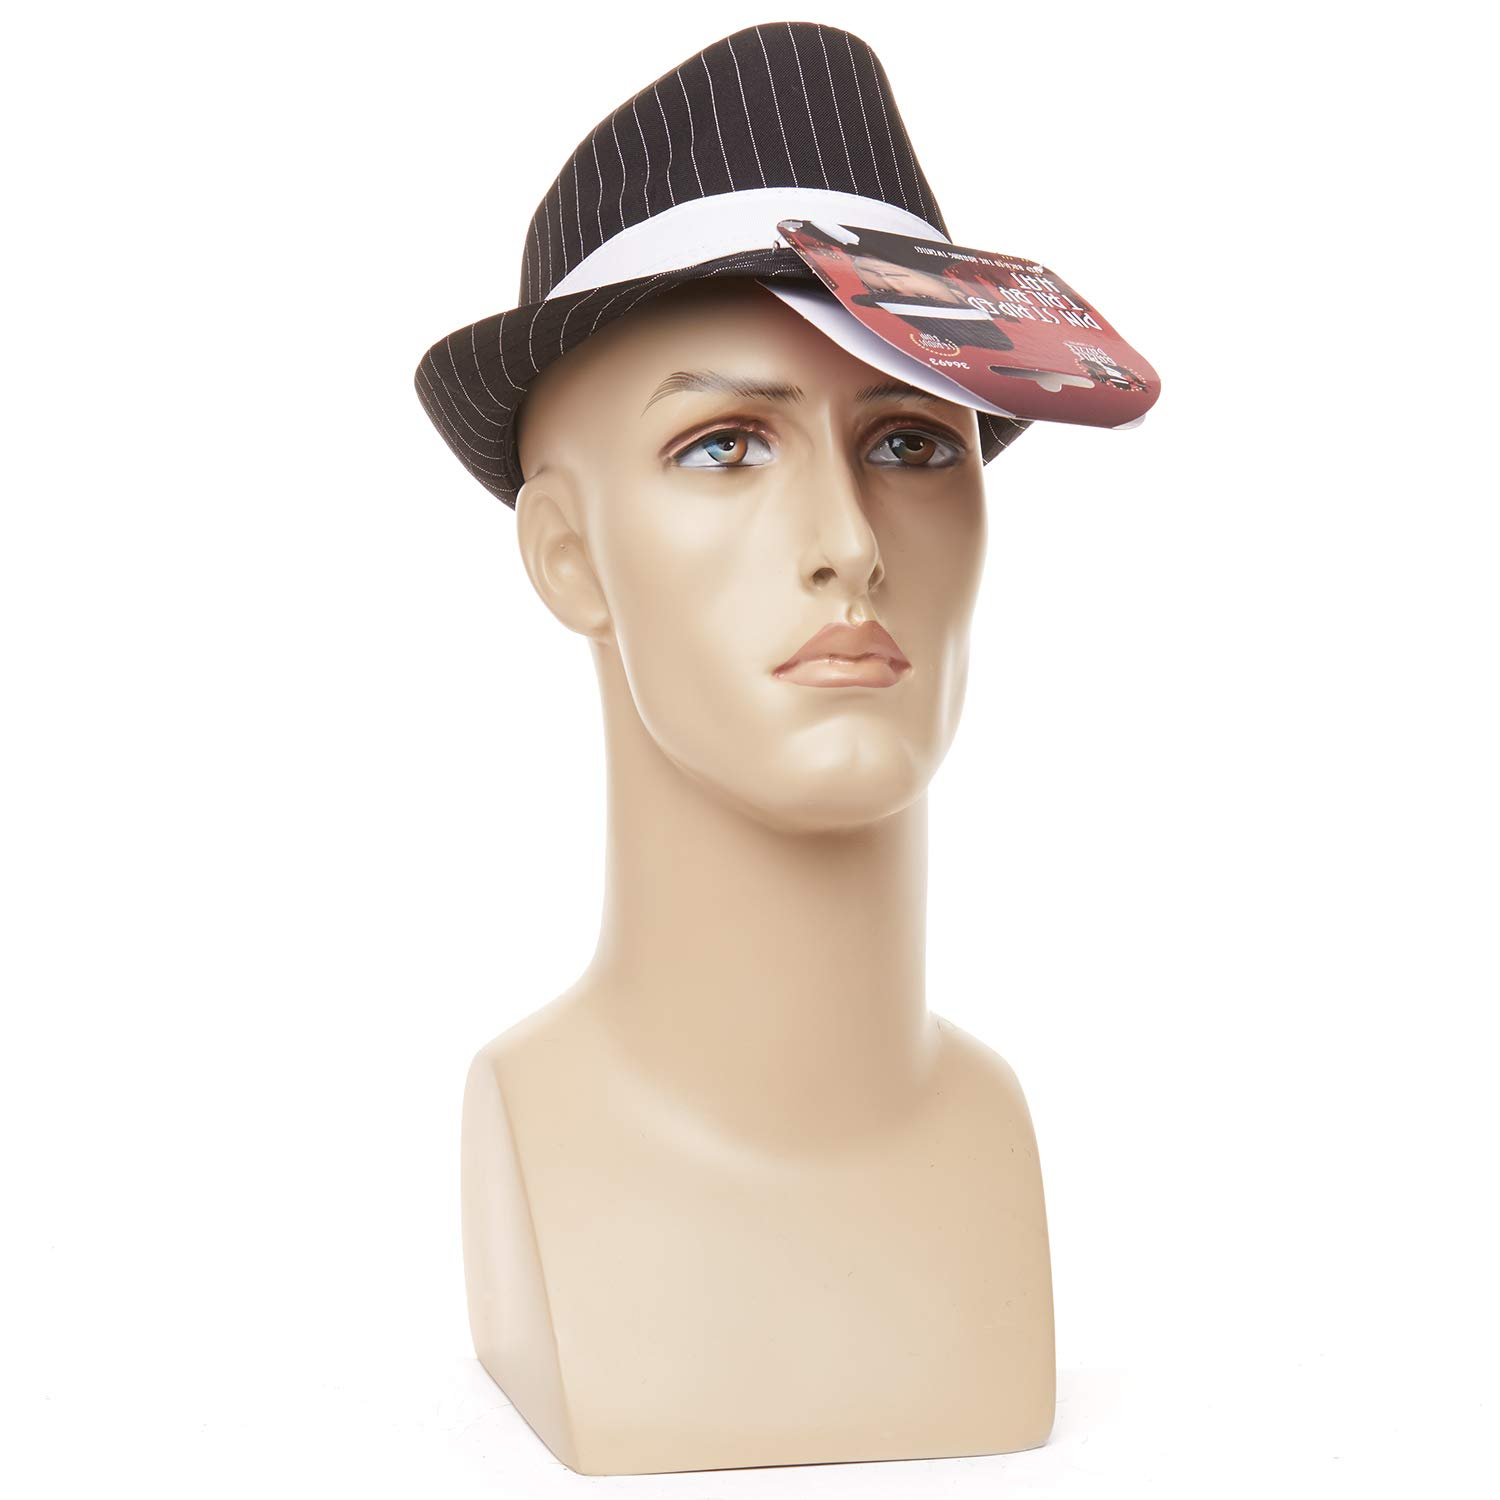 22604d99dc367 Smiffys Deluxe Trilby Hat  Amazon.co.uk  Toys   Games